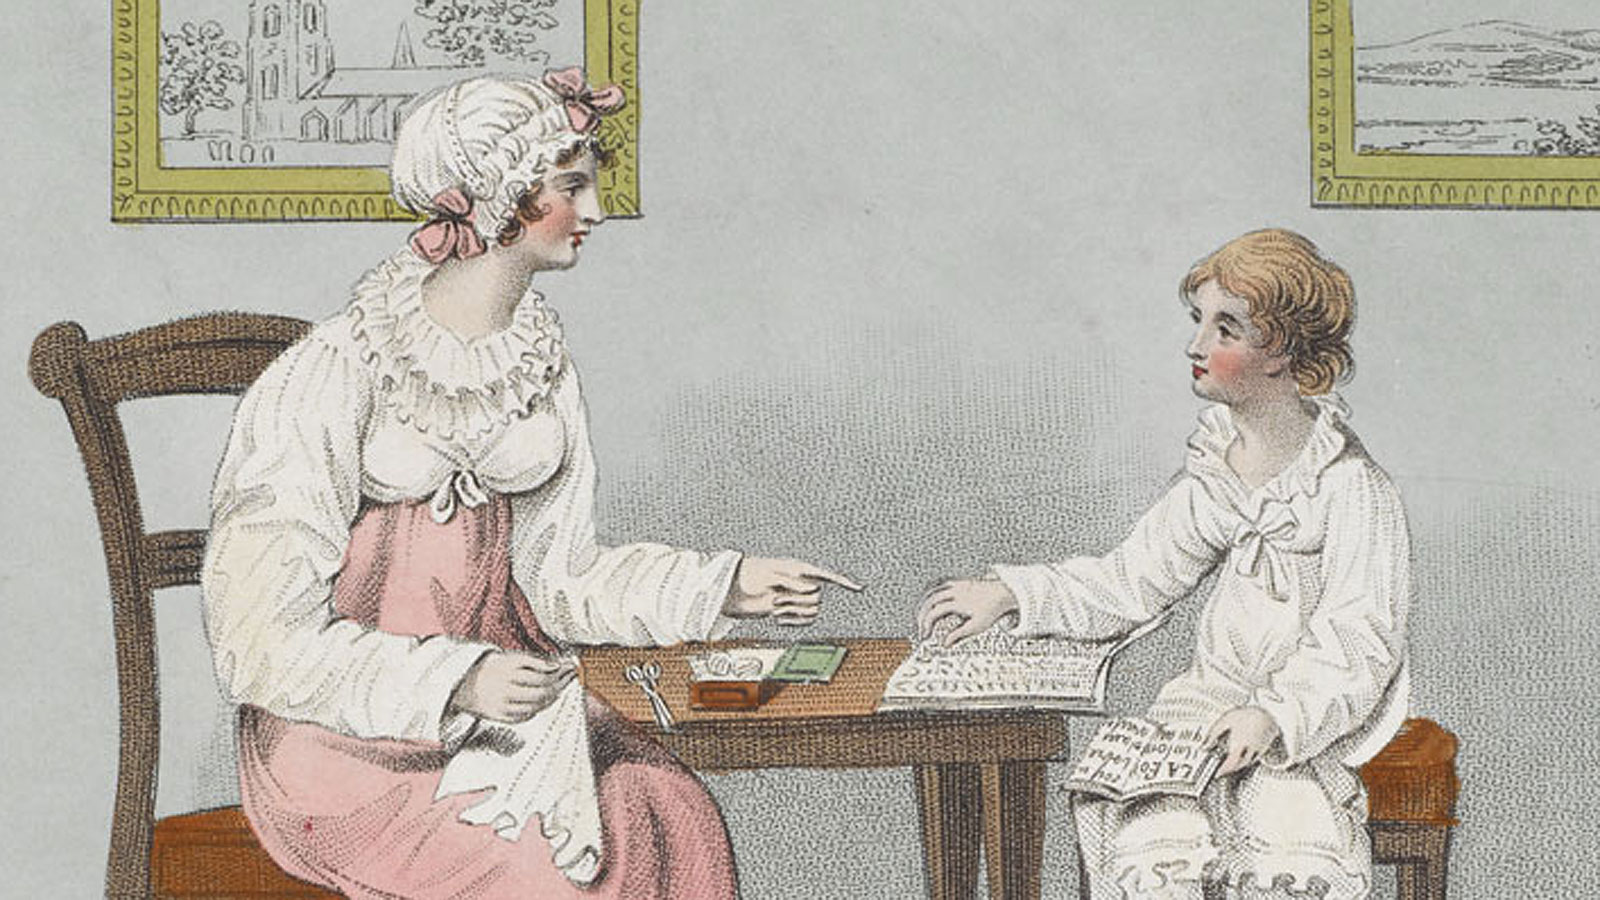 Female education, reading and Jane Austen